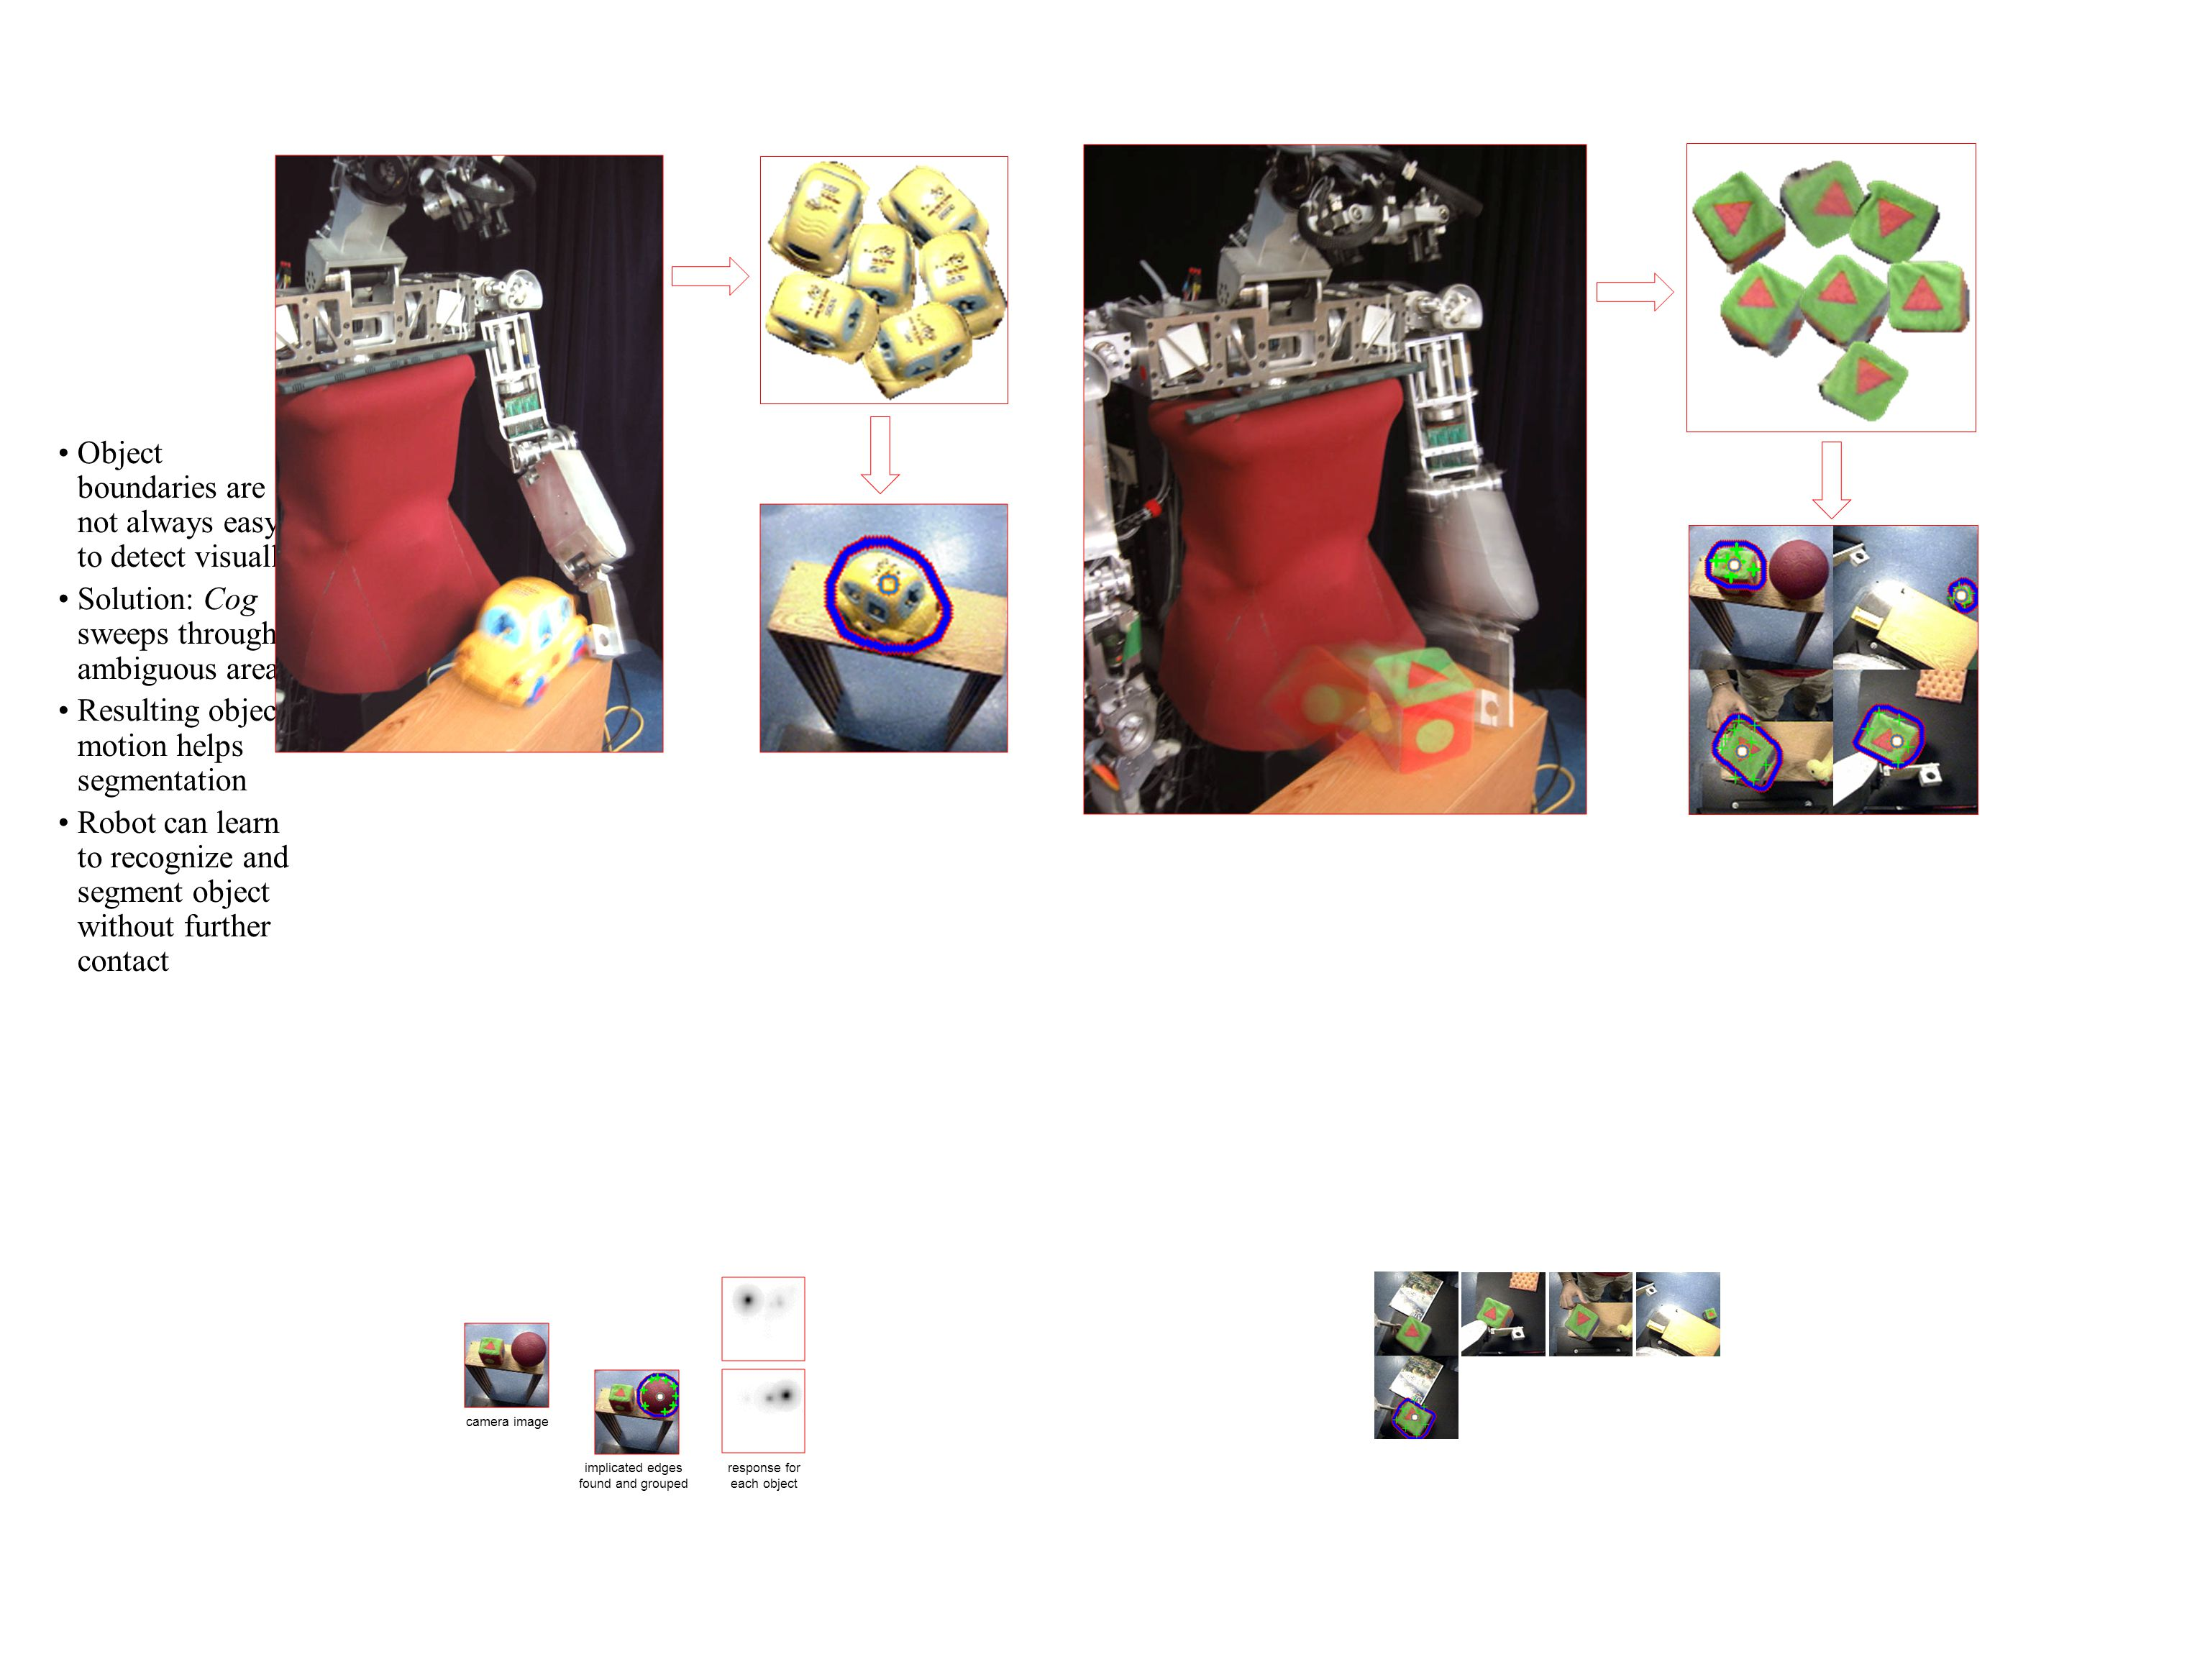 Object boundaries are not always easy to detect visually Solution: Cog sweeps through ambiguous area Resulting object motion helps segmentation Robot can learn to recognize and segment object without further contact camera image response for each object implicated edges found and grouped